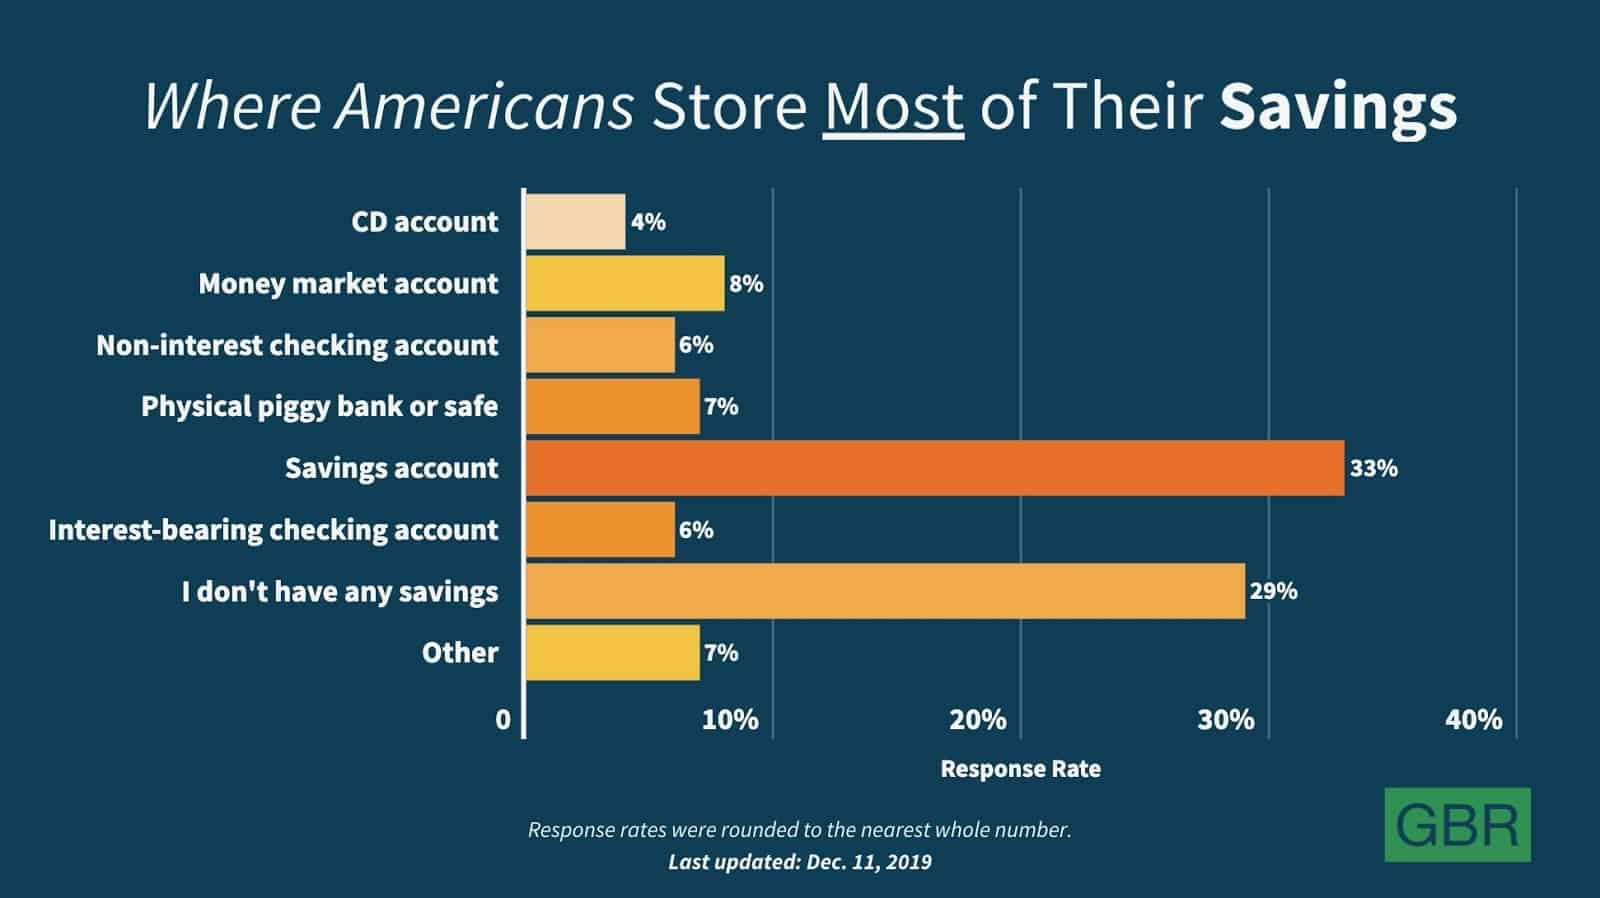 where americans store most of their saving via GBR